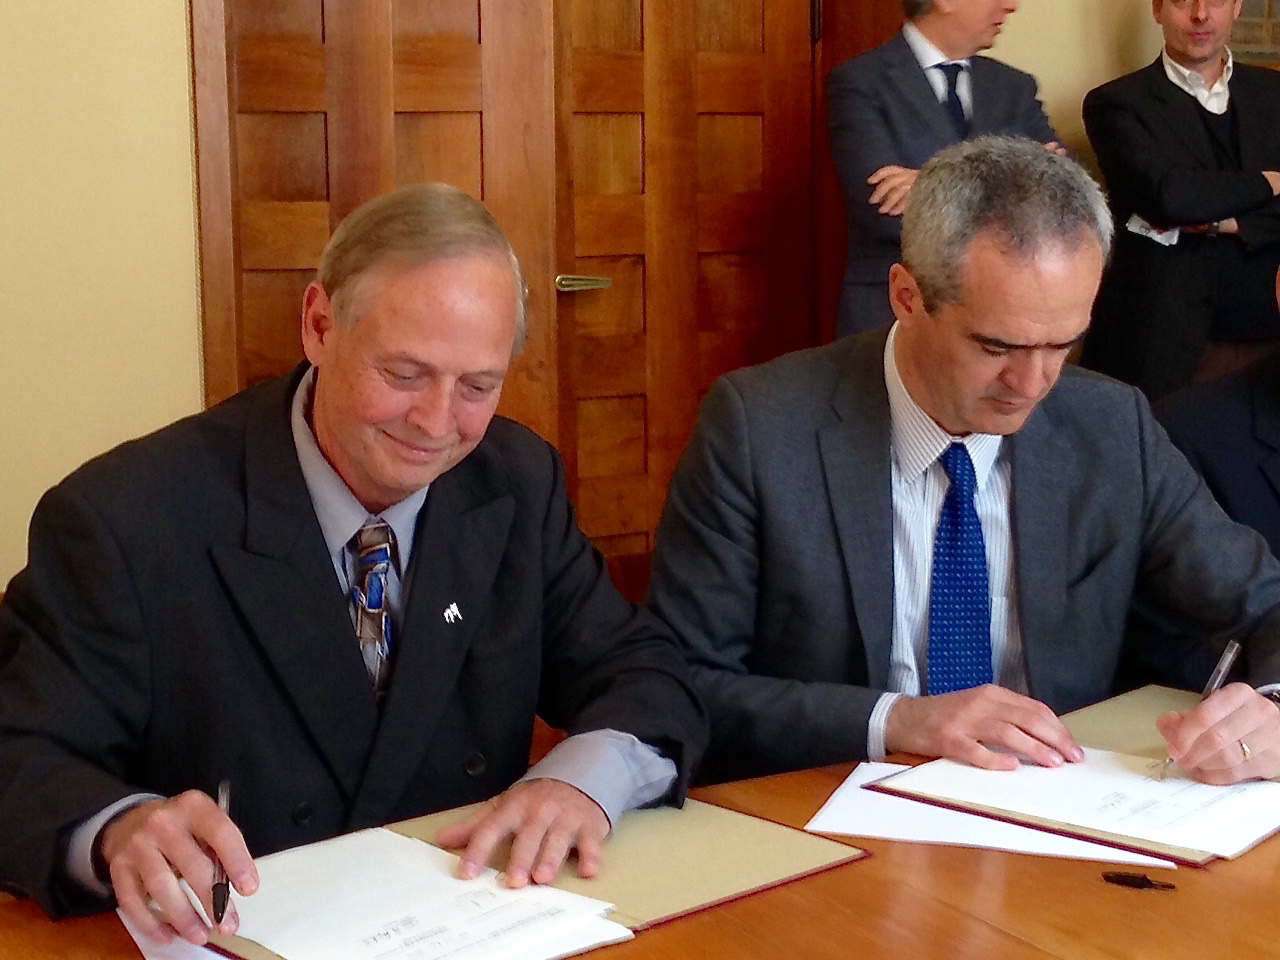 Don Shilling, left, head of the University of Georgia department of crop and soil sciences, and Rosario Rizzuto, rector of the University of Padova, sign an agreement finalizing a duel master's degree program between the universities.